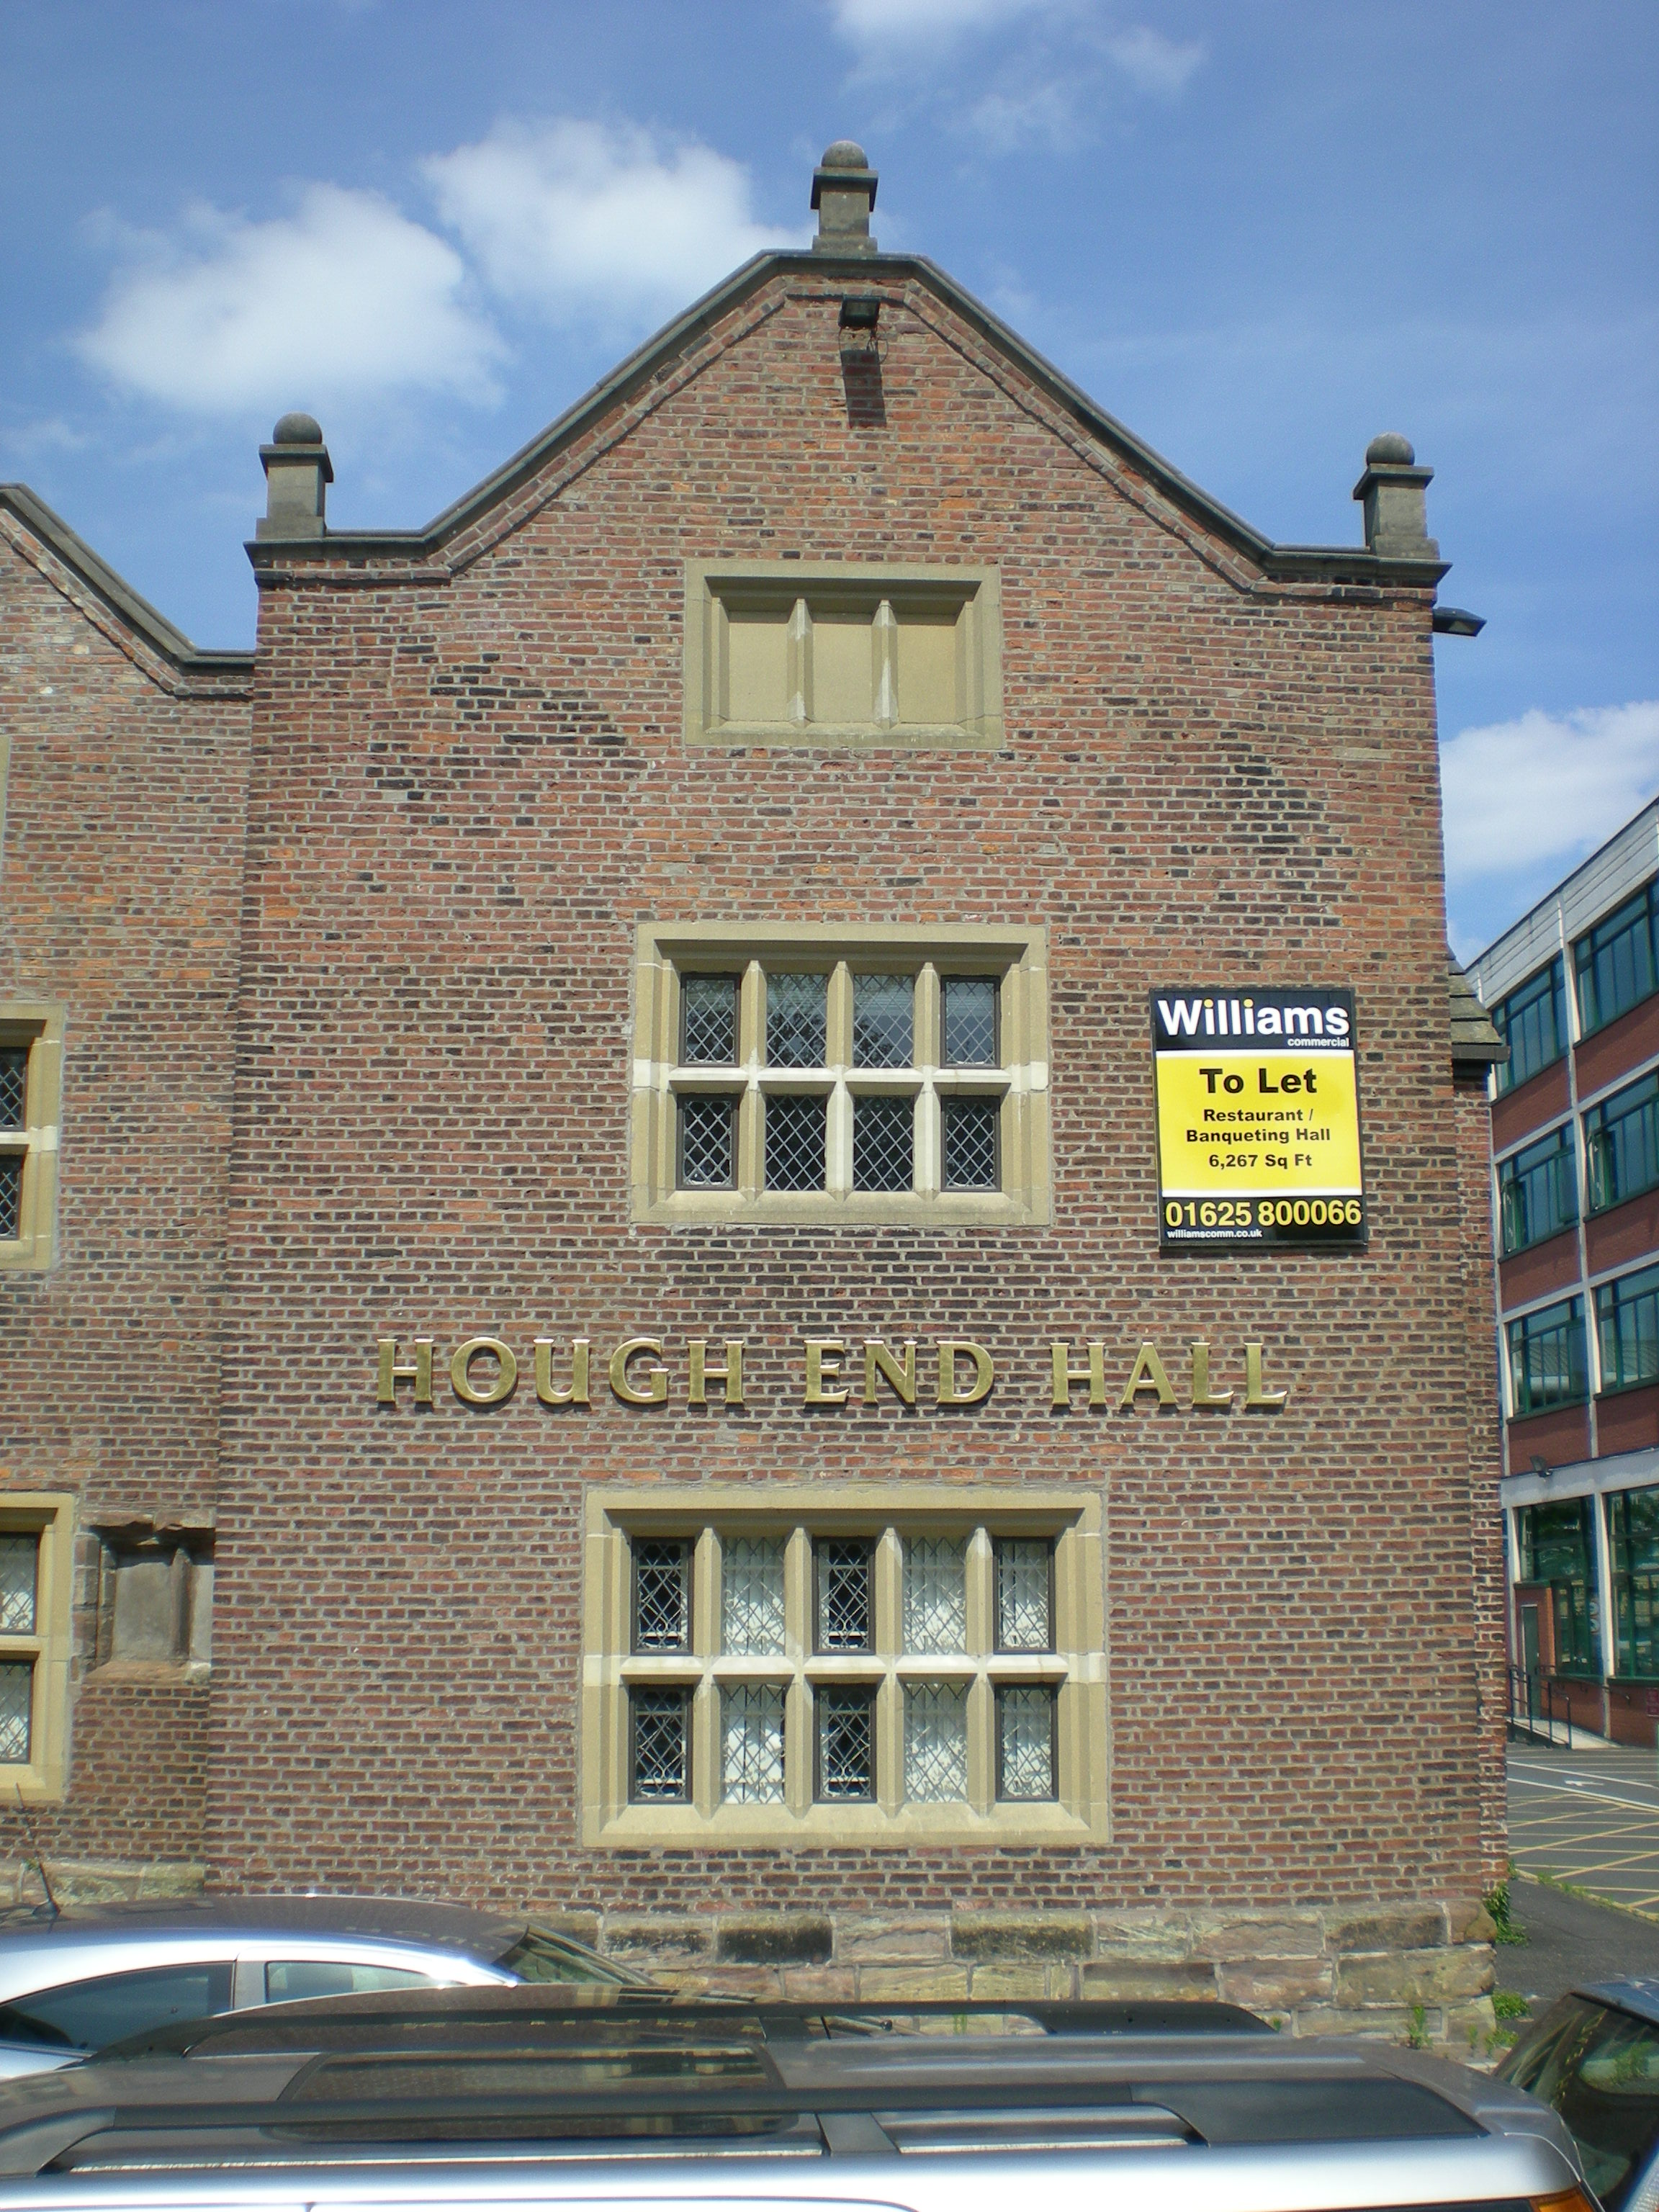 Hough End Function Room